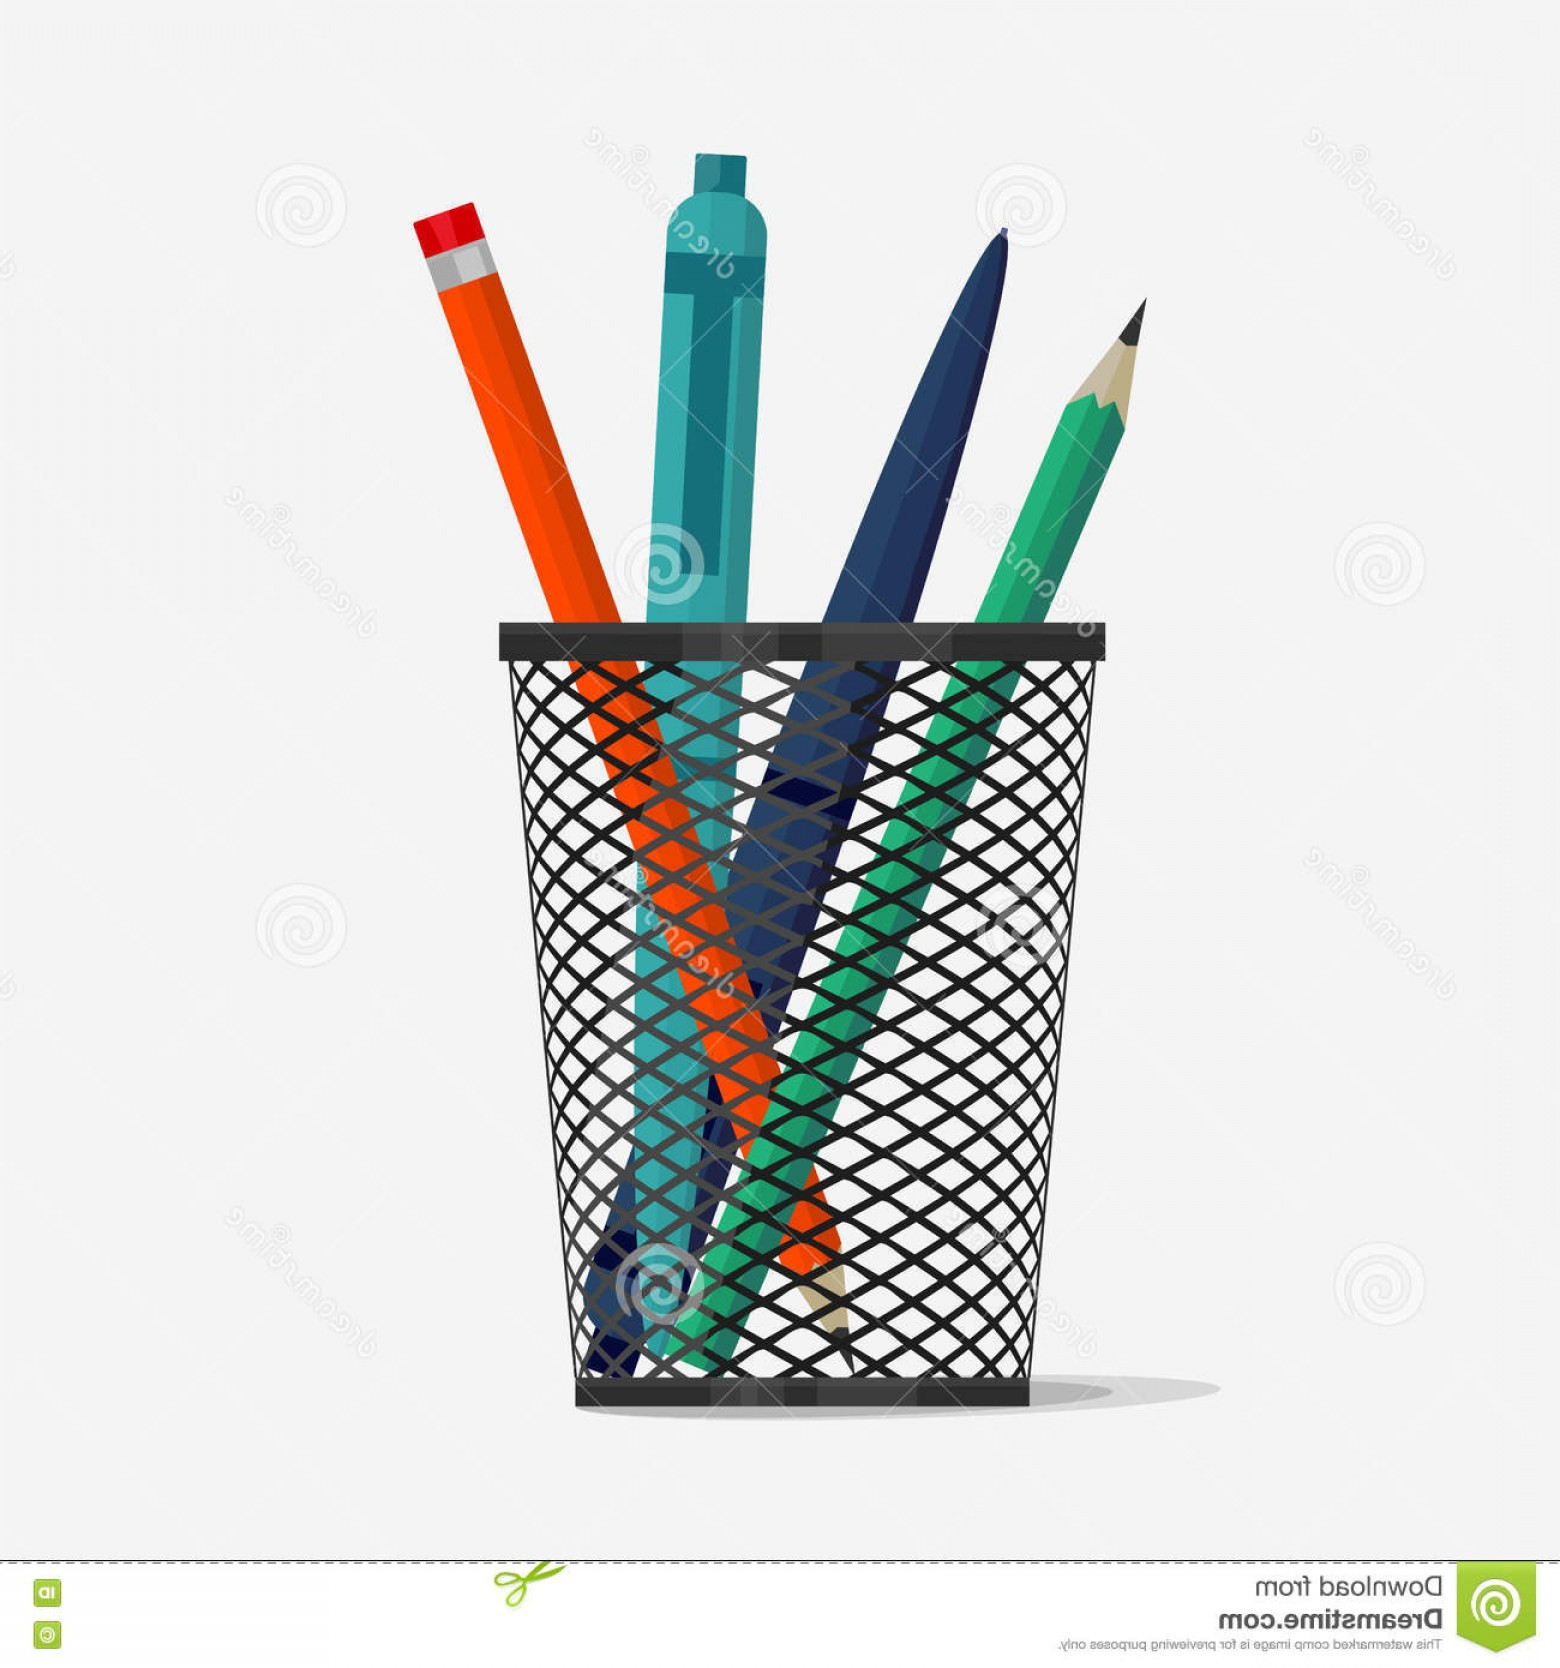 Vector Pencil Holder: Stock Illustration Pen Pencil Holder Basket Office Organizer Box Metal Grid Clerical Vase Vector Image